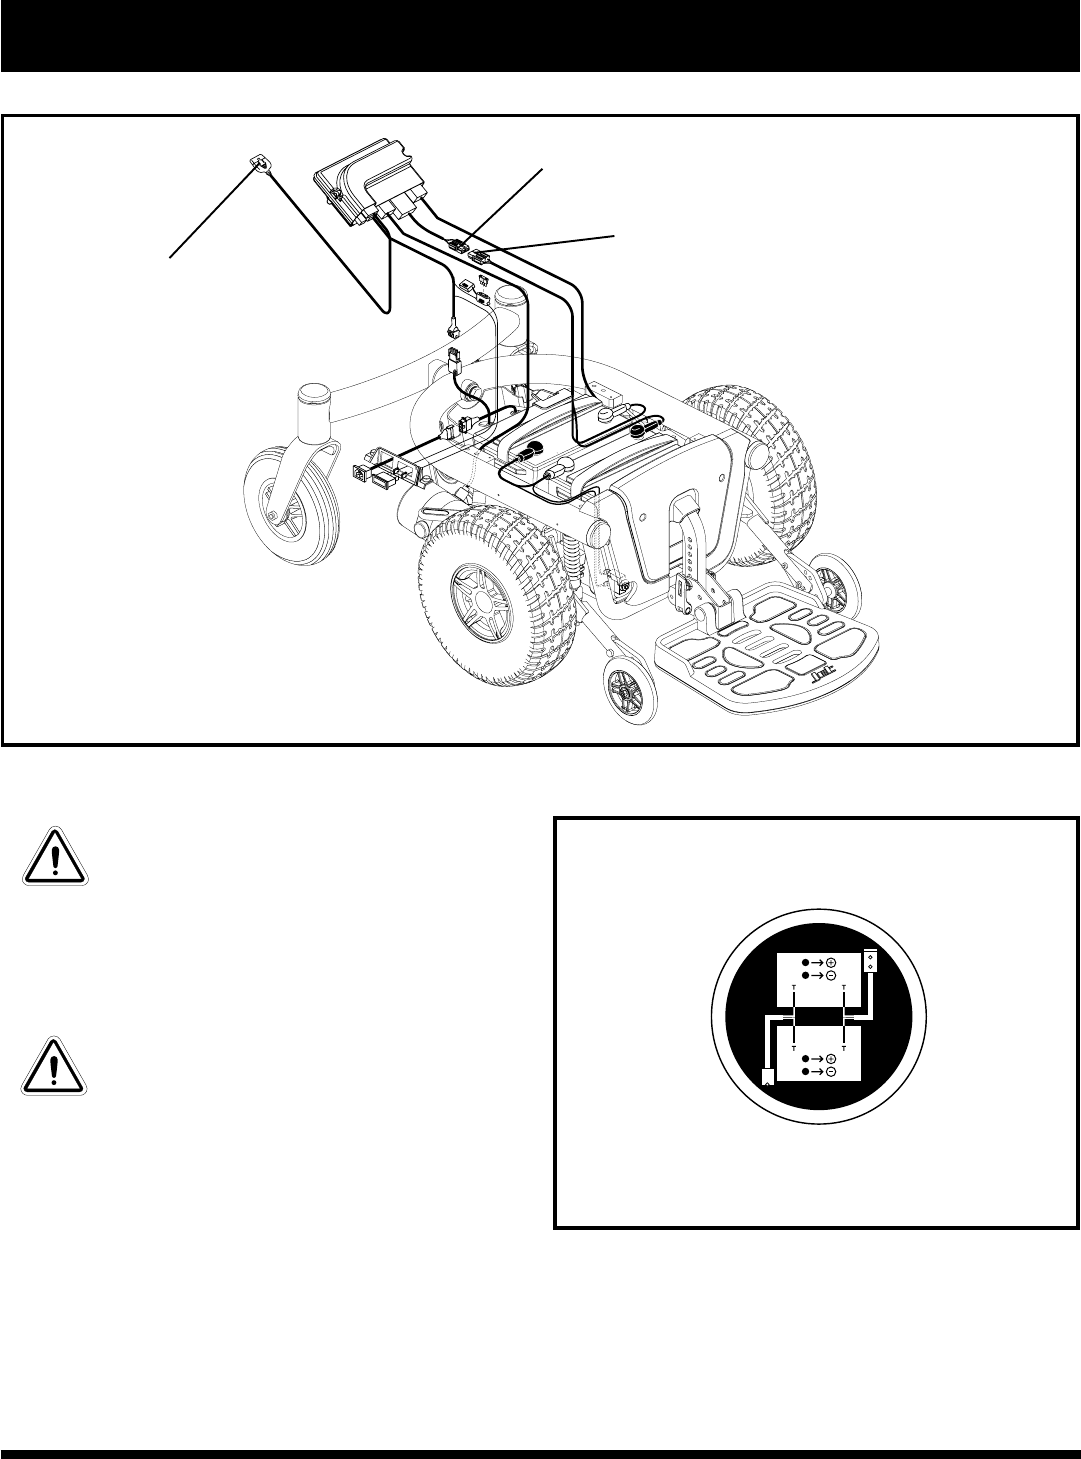 6dc69666 e3c5 4f7f 95c8 2ac0b576ce44 bg26 page 38 of pride mobility mobility aid jet 3 user guide pride jet 3 ultra wiring diagram at edmiracle.co